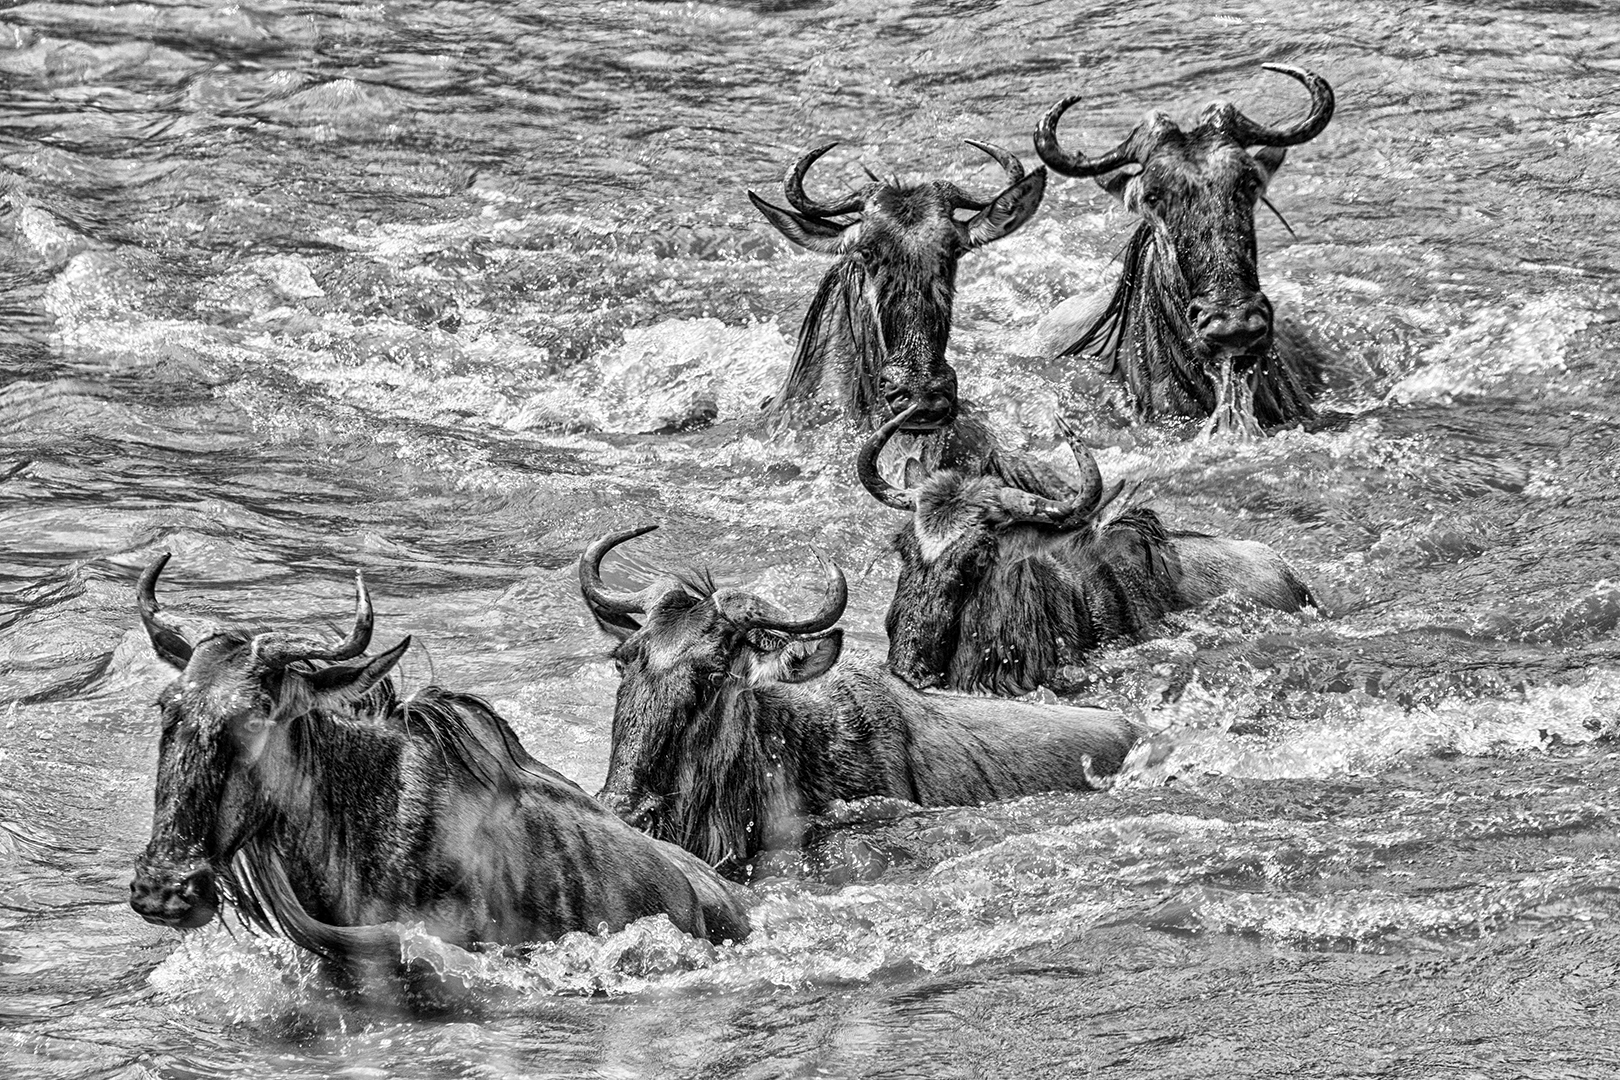 Wildebeest Migration, Susan Greeff; Photography